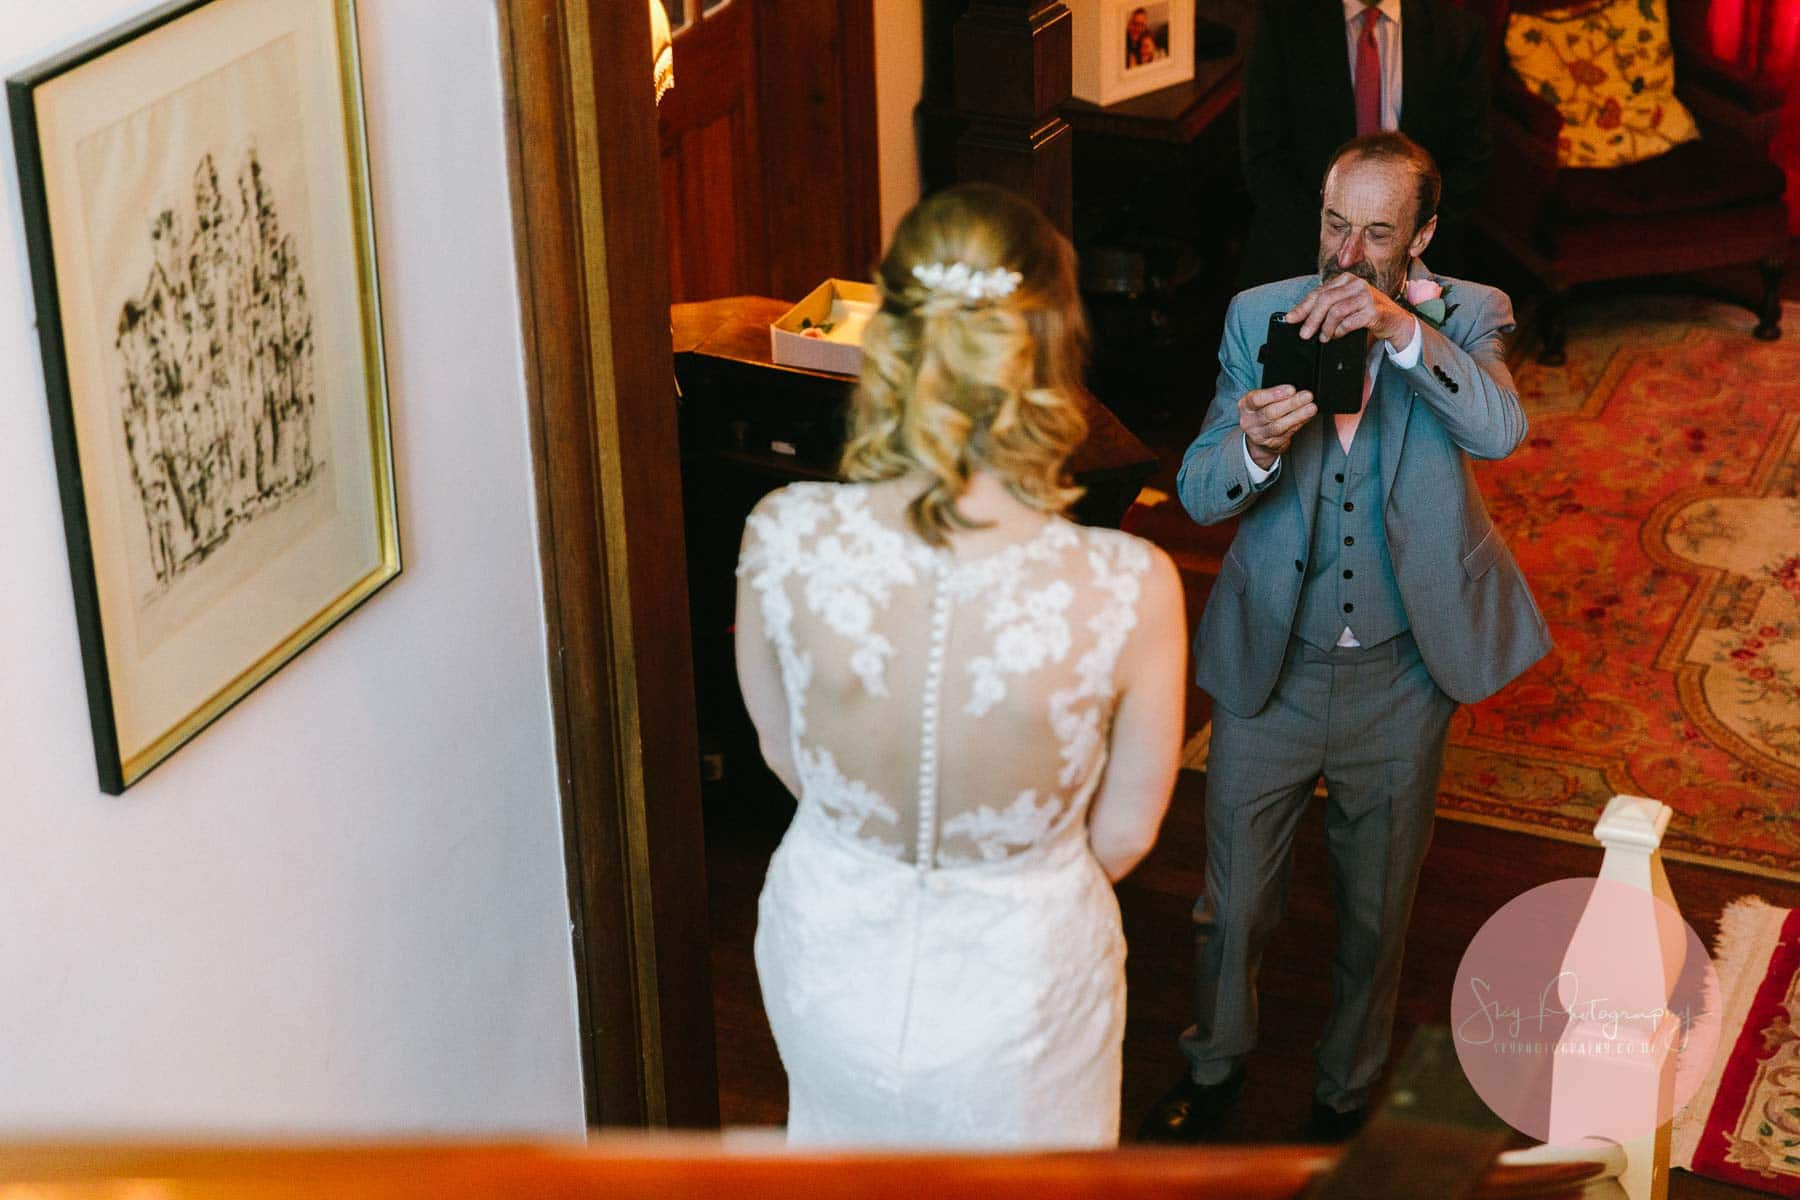 Father of the bride taking photo of his daughter